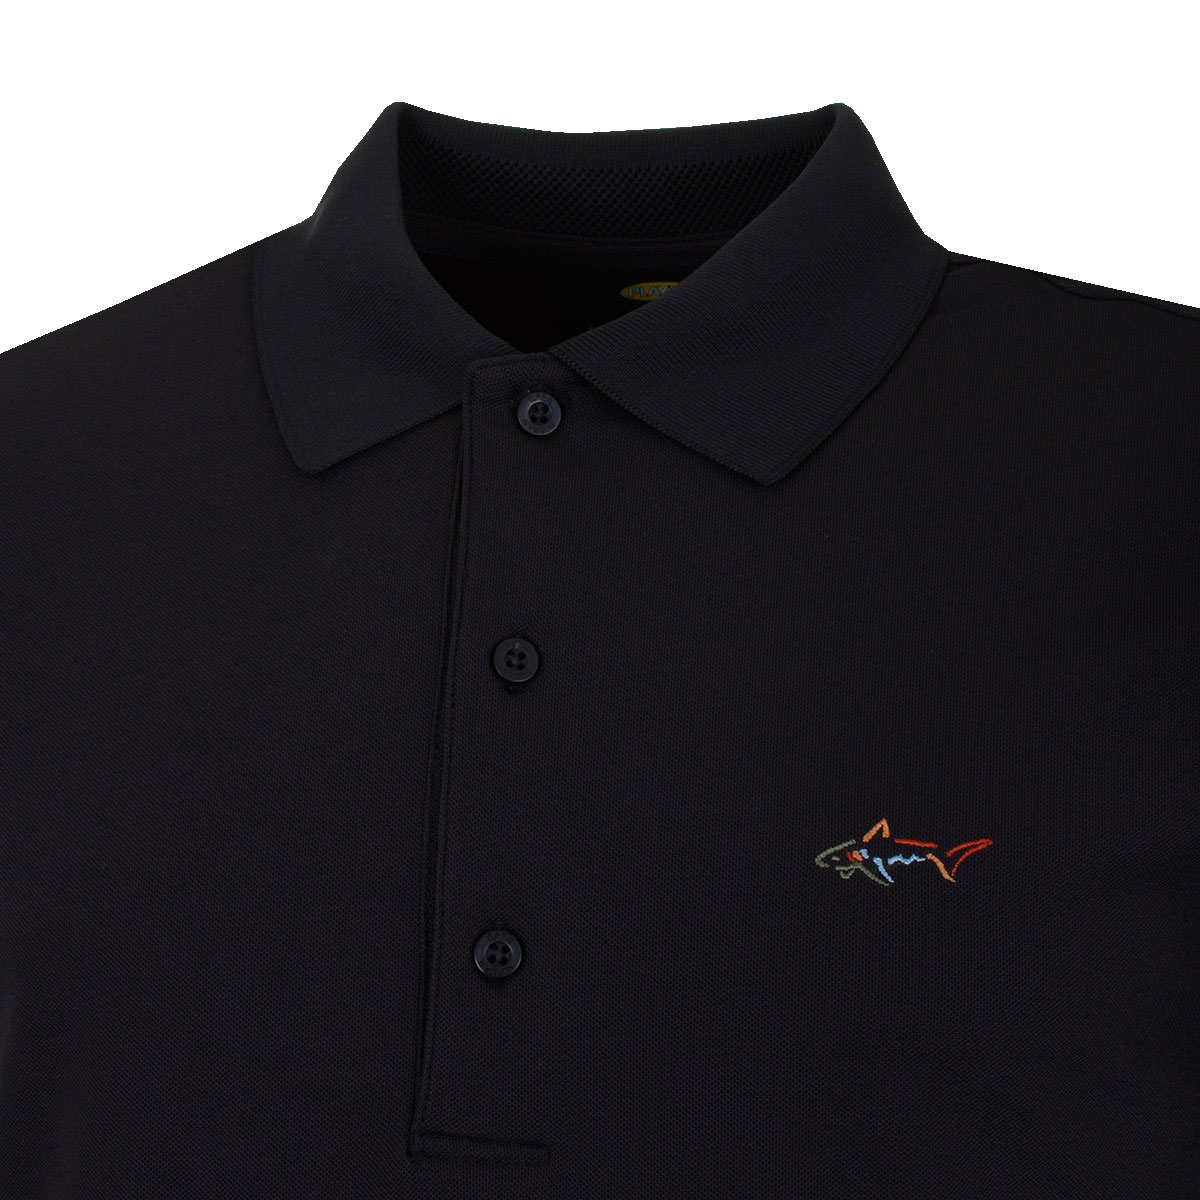 norman men Daily steals offers this greg norman men's pocket t-shirt 5-pack for $4999 with free shipping that's the lowest price we could find for this quantity by $15.